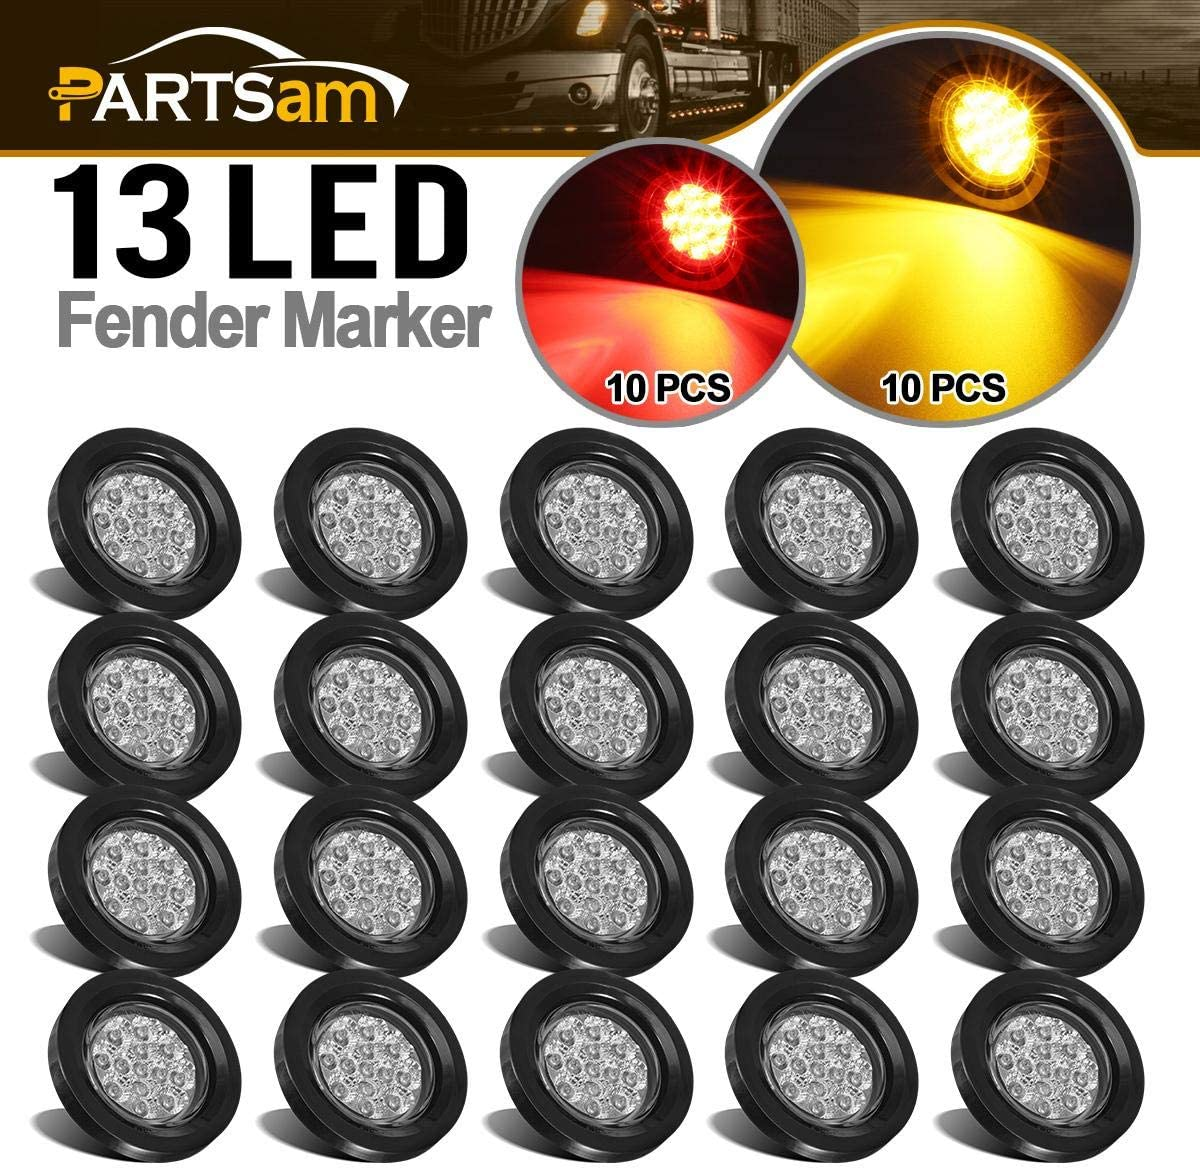 "Partsam 20Pcs 2.5"" Round Trailer Led and Side Marker Lights 13 Diodes Clear Lens w Reflectors Grommets/Pigtails Truck RV Waterproof, Led Cab Panel Lights for Breather Bar (10Amber+10Red) 71QAtNSSZaLSL1200_"